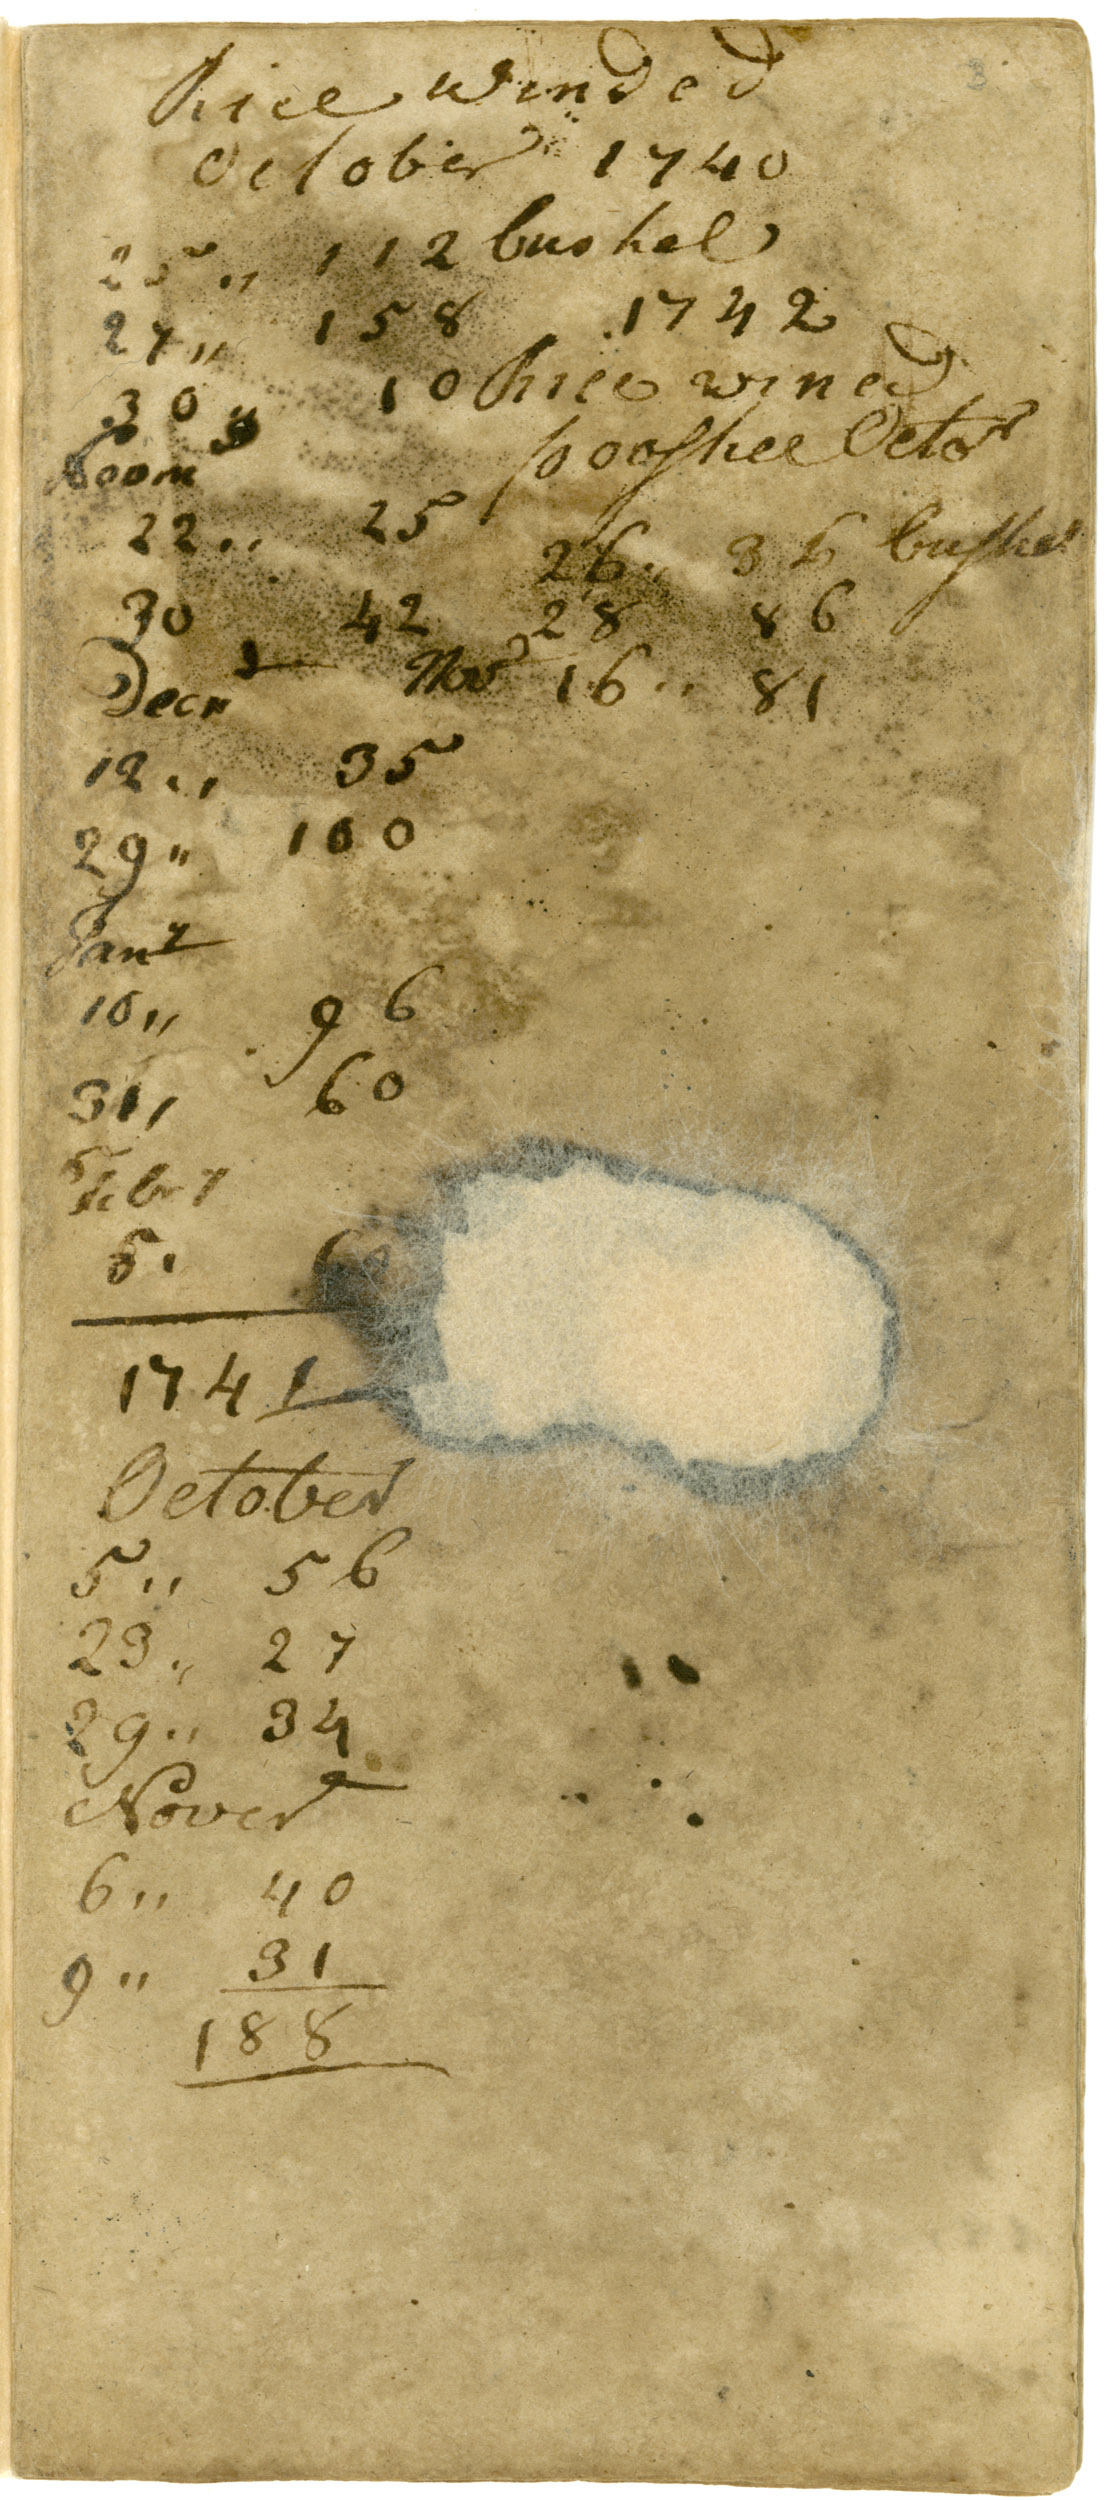 Ravenel Diary 1731-1860, page 2